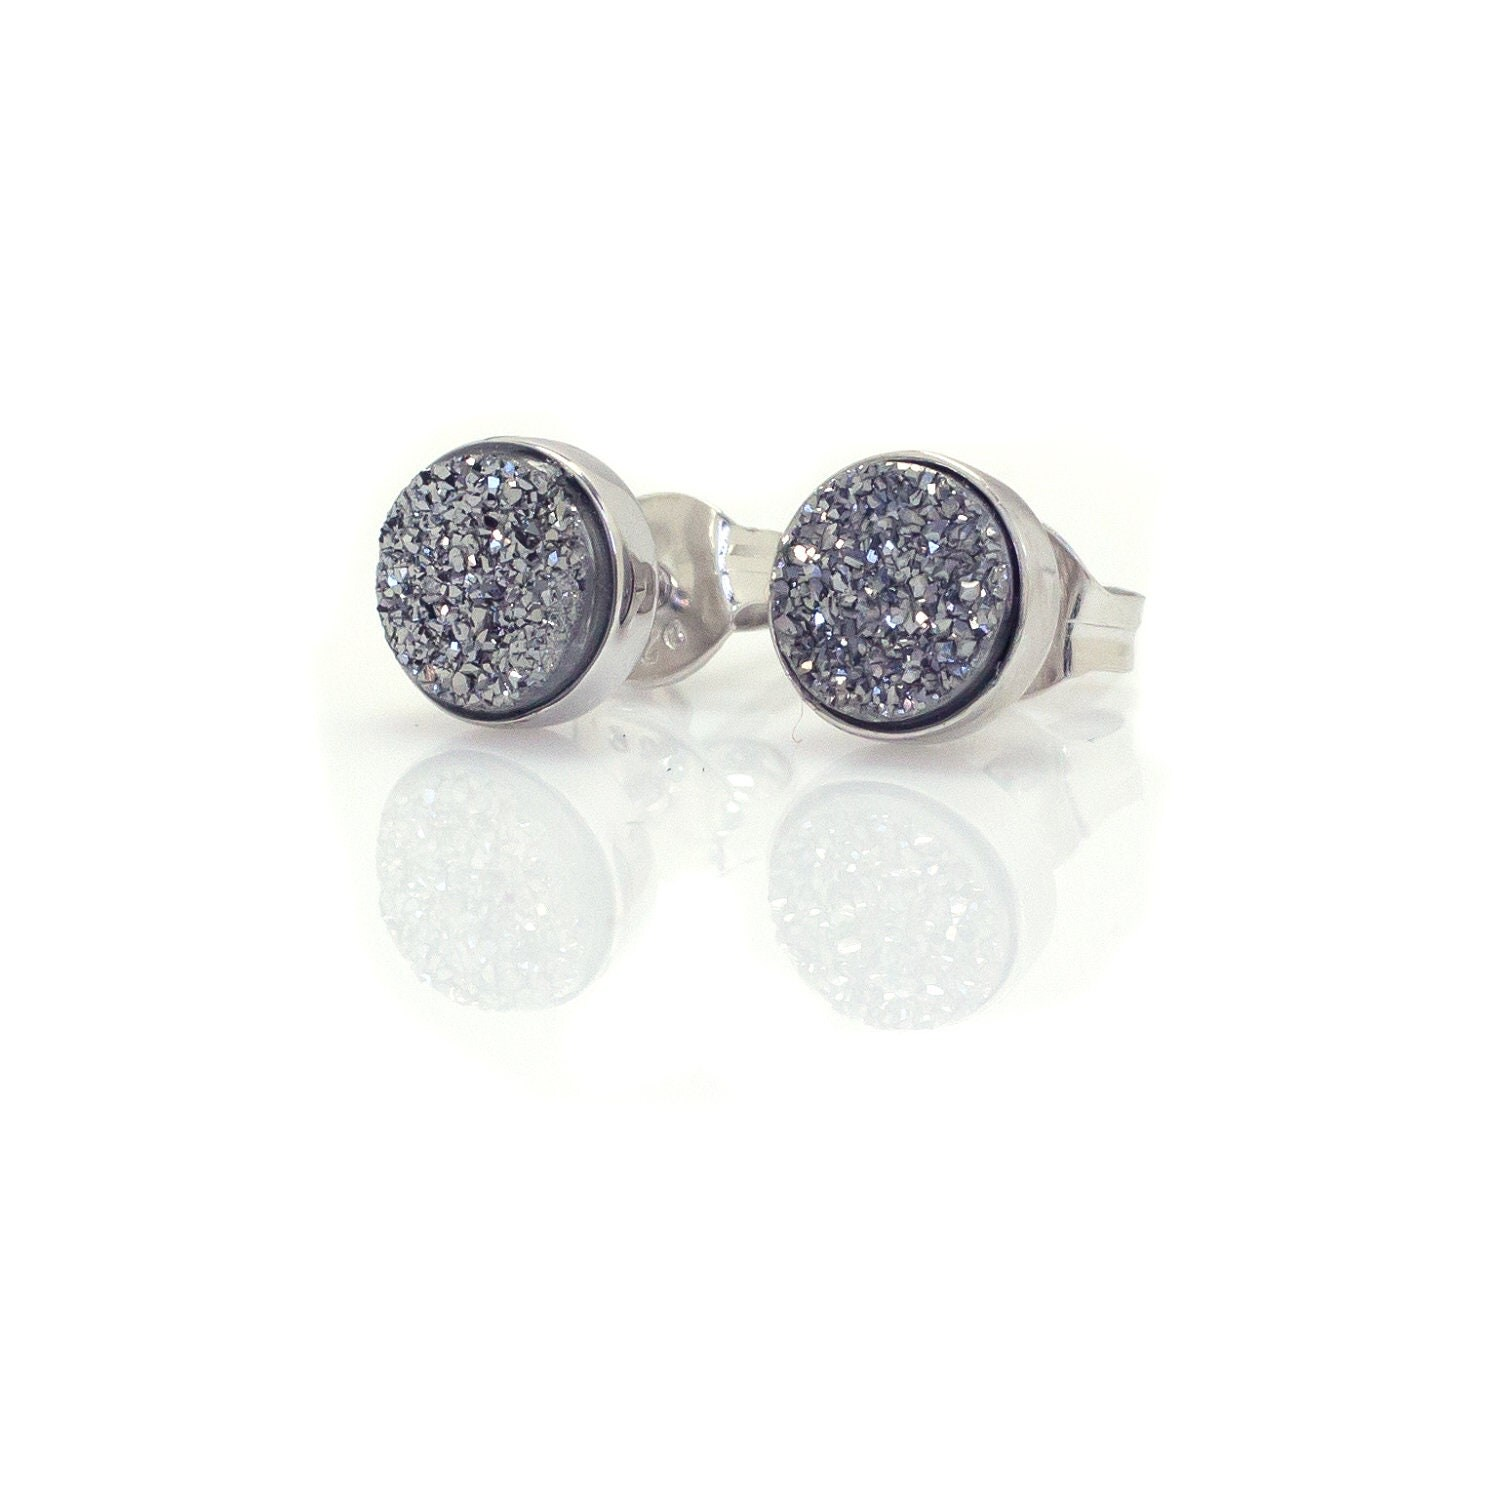 Silver Drusy Quartz Stud Earrings Sterling Silver 6mm